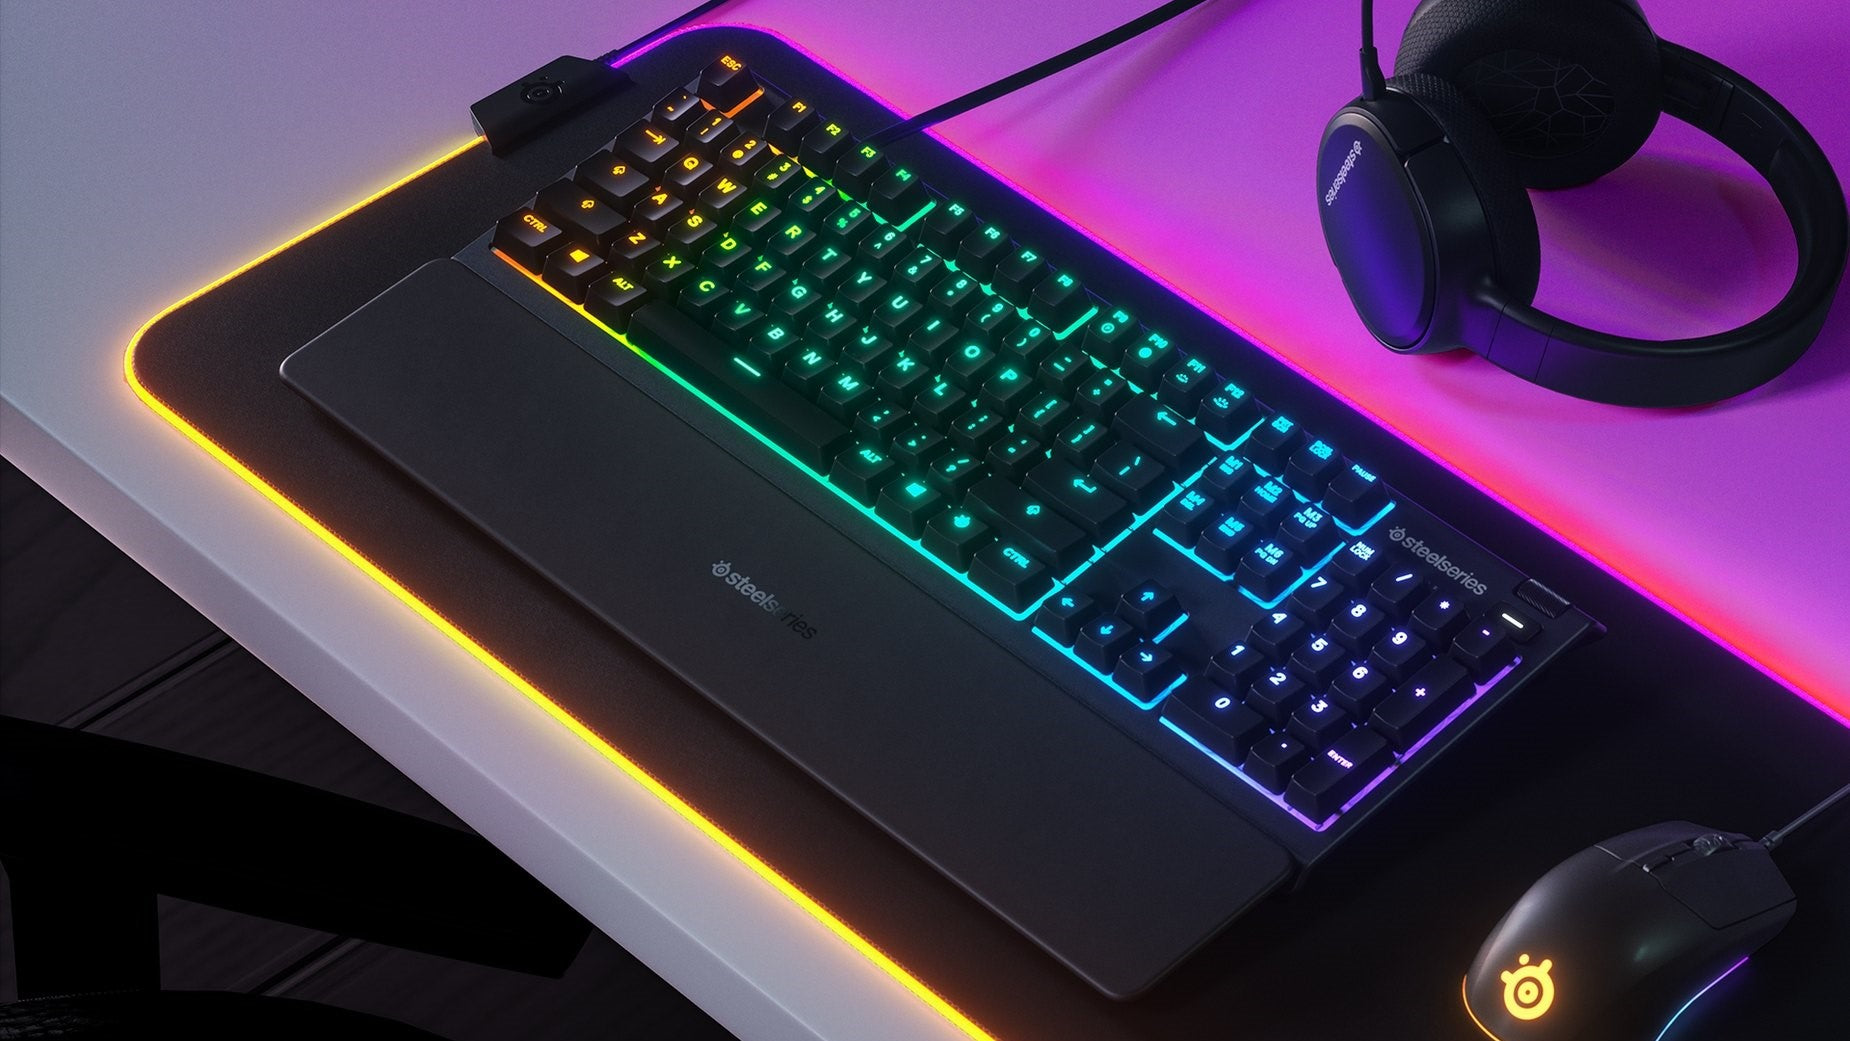 10-Zone RGB Illumination - Choose from brilliant rainbow RGB effects, your favorite color schemes, or even to react when you're under attack. Personalize the illumination to match any style.